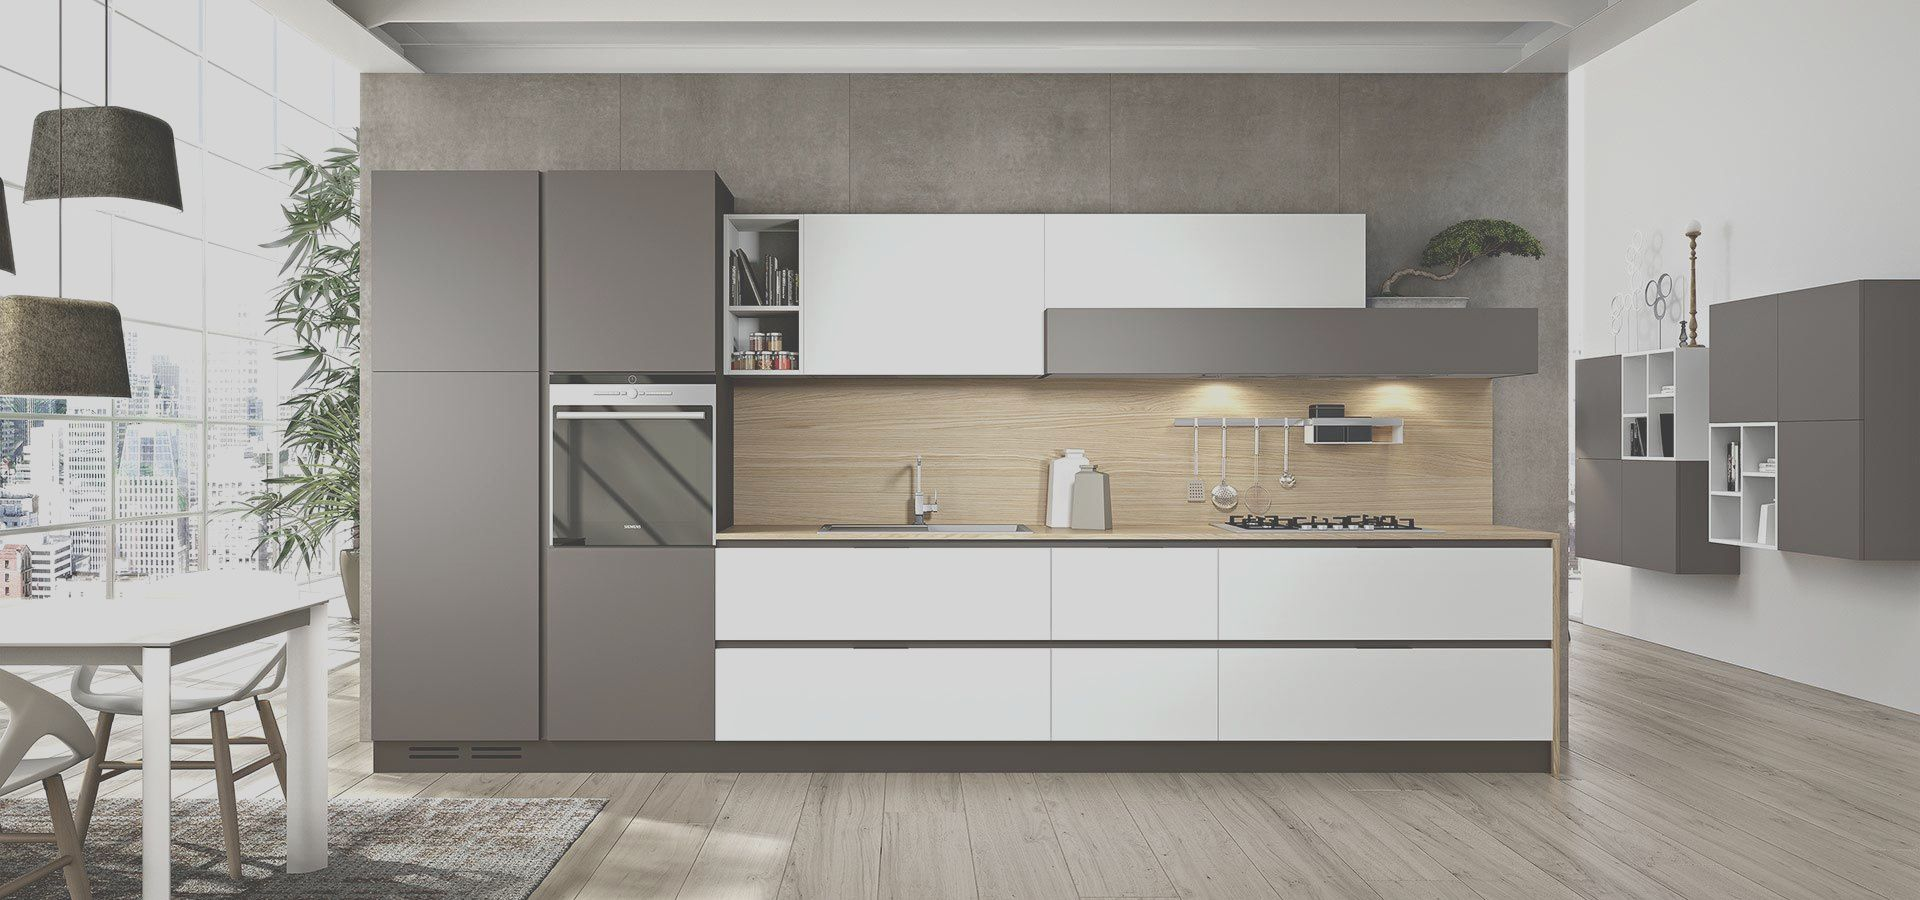 8 Beneficial Linea Decor Kitchen Photos In 2020 Kitchen Cabinets Without Handles Kitchen Without Wall Cabinets Modern Kitchen Cabinets